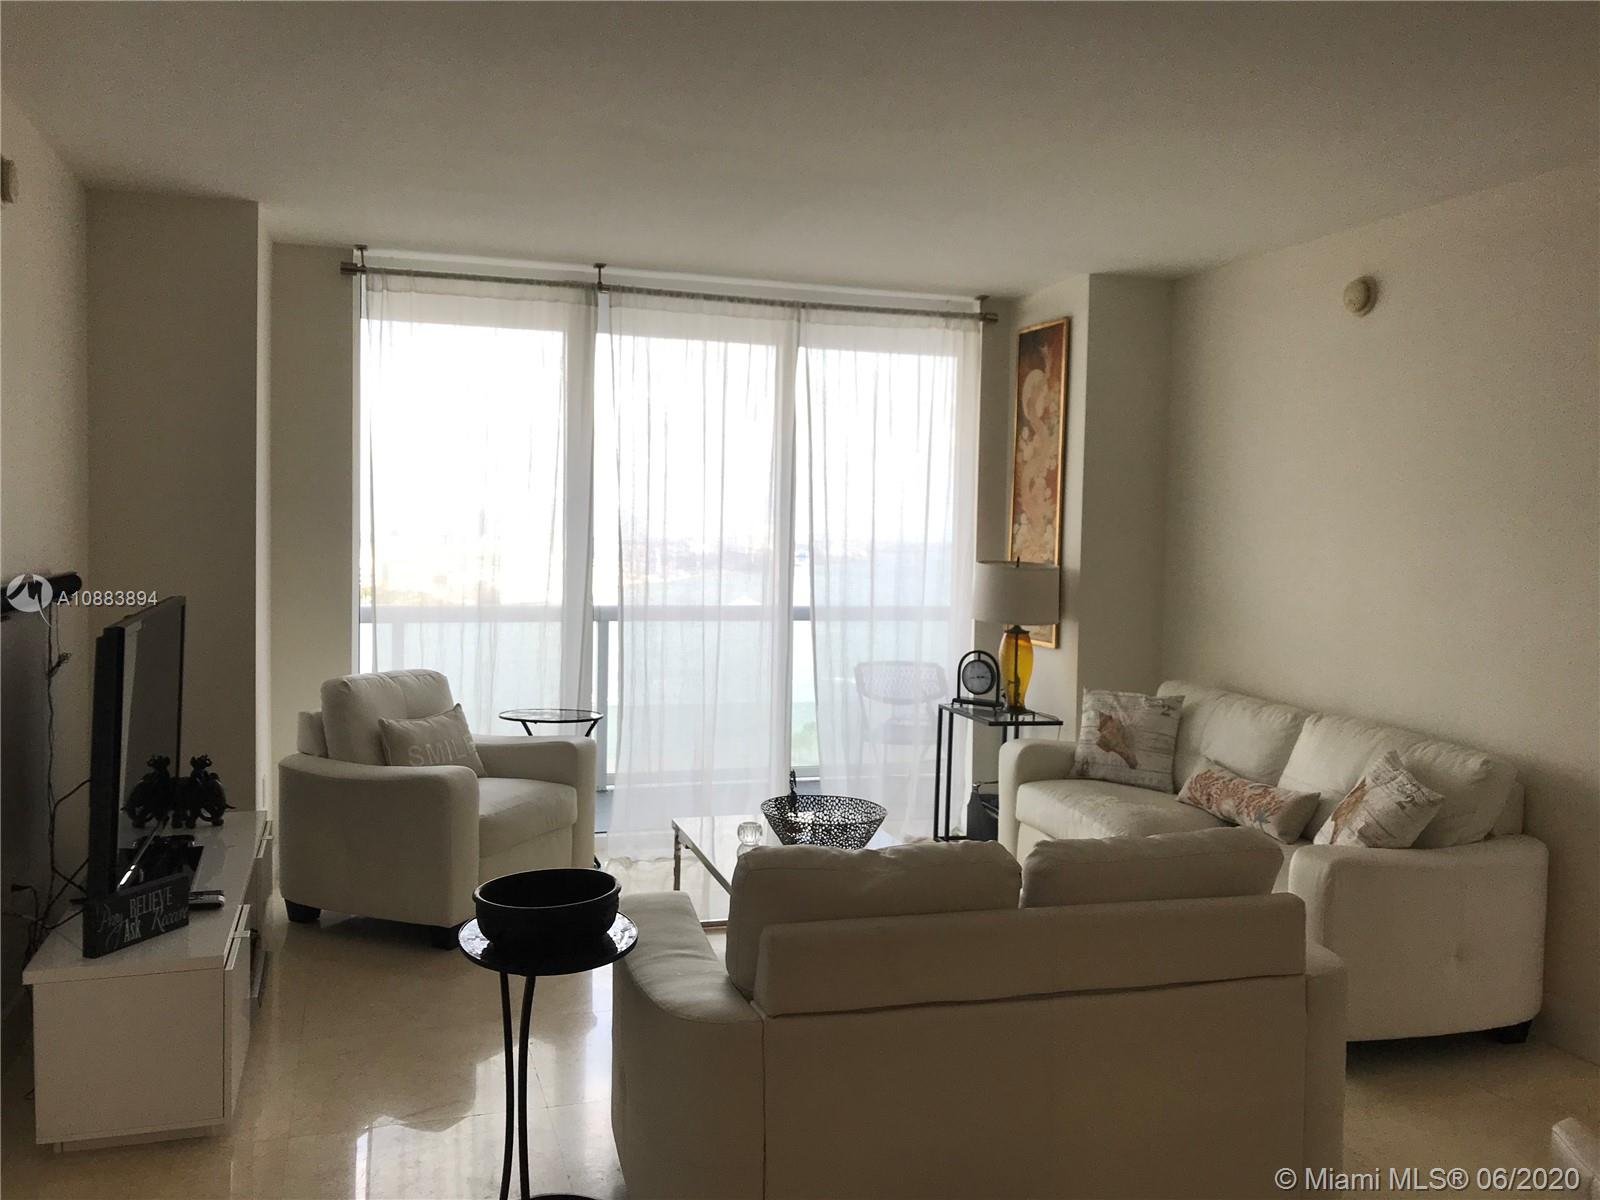 Beautifully FURNISHED 2BR+Den, 2Bath 1,322 SF apartment at 50 Biscayne w/direct EAST facing views & floor-to-ceiling windows from every room. Unit features spacious a split floor-plan, large bedrooms both w/ensuite & walk-in closets; open concept kitchen, living/dining rooms. Amenities include: 24-hour concierge, security & valet parking, infinity-edge pool & poolside cabanas, hot tub, formal & informal clubrooms with kitchen, billiards table, wet bar & media center, state-of-the-art fitness center, yoga/pilates room, sauna & steam rooms. Walking distance to Shops at Bayside, AAArena, lots of restaurants, Arsht Center, Whole Foods & Brickell. By car, 50 Biscayne is just 10 minutes from South Beach, 15 minutes from Wynwood Miami, and 20 minutes from the Miami International Airport.